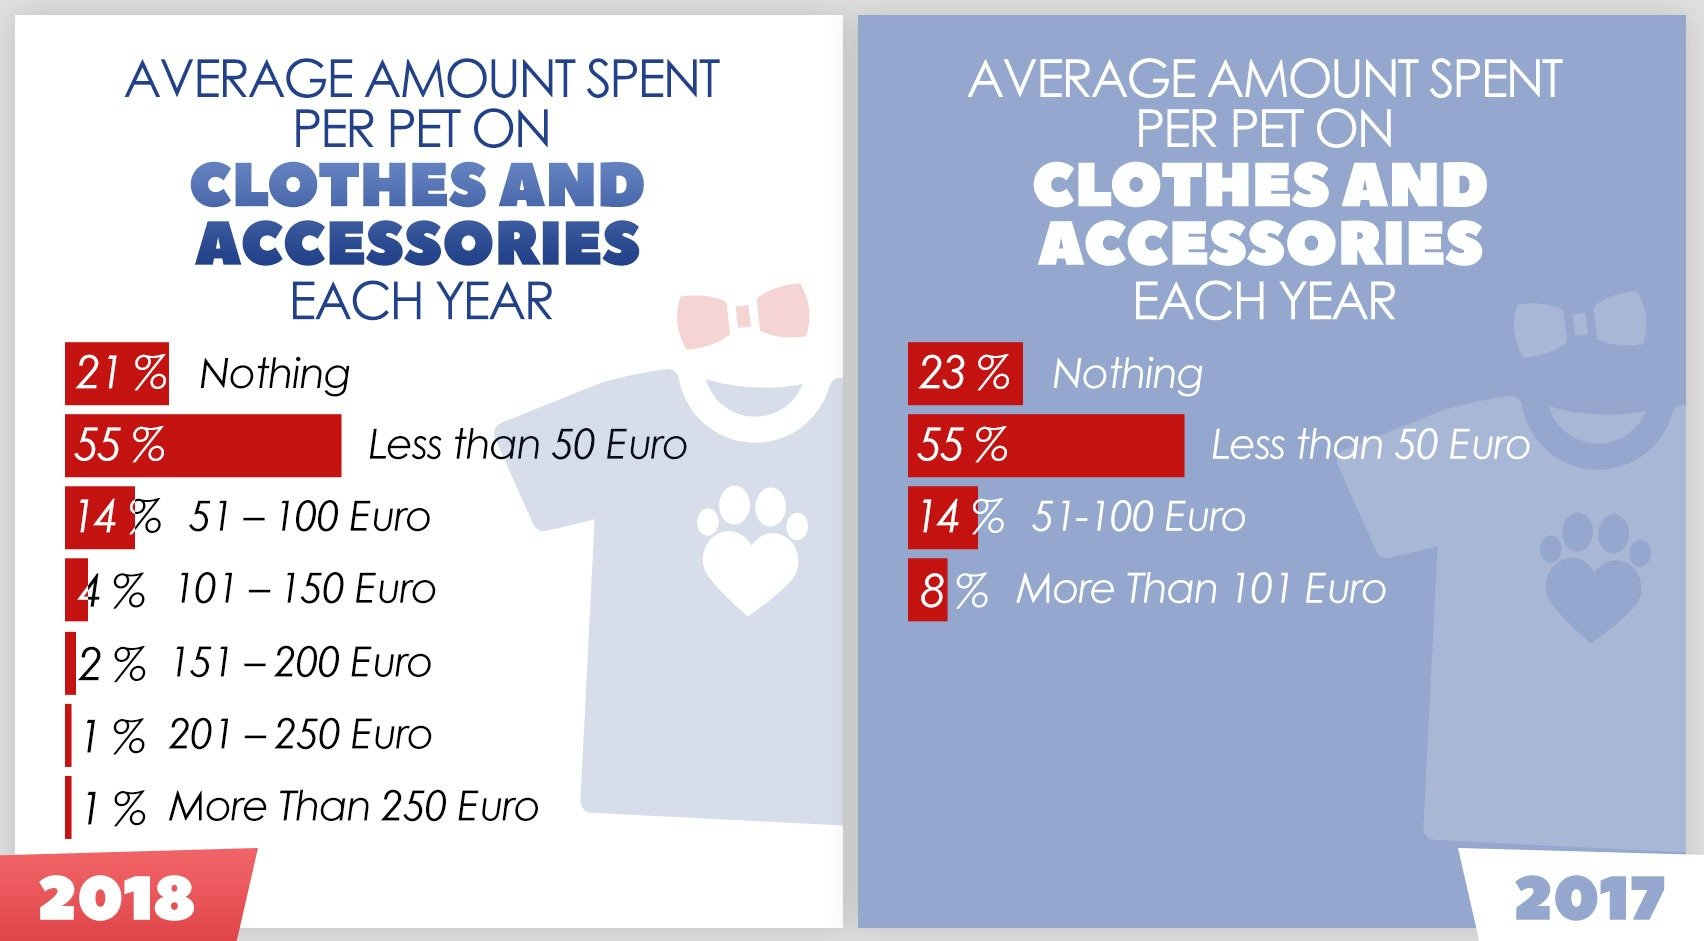 Pet Owners Spend On Clothes